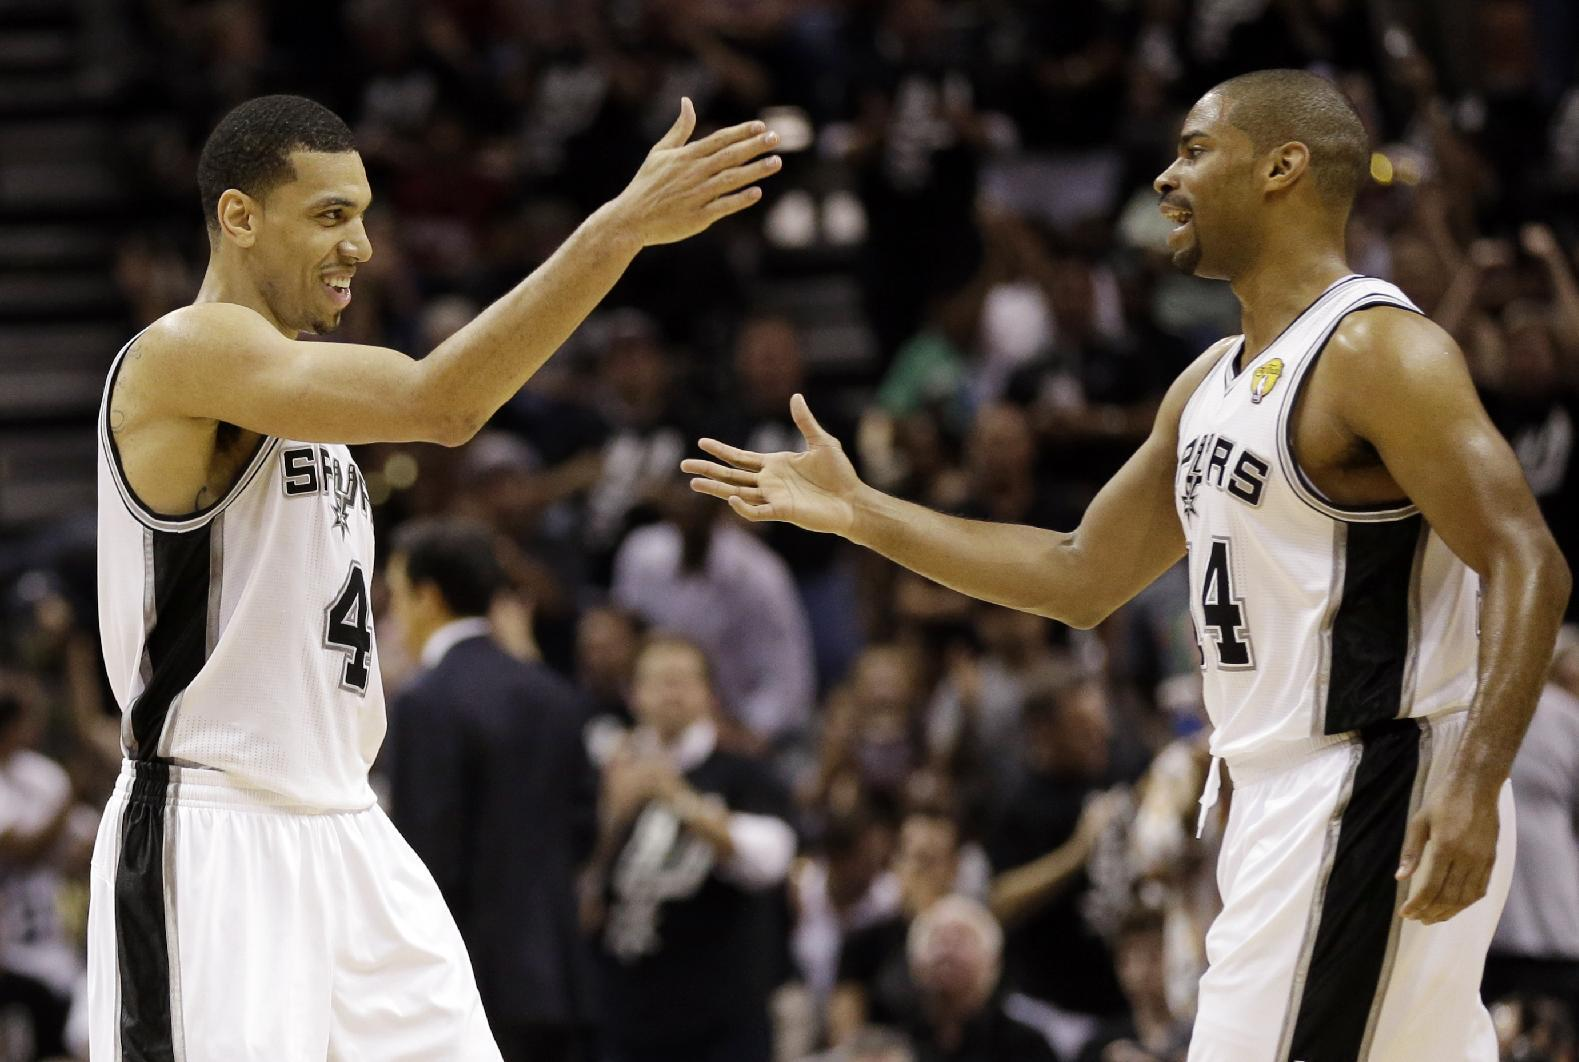 San Antonio Spurs' Danny Green, left, reacts with Gary Neal after scoring during the first half at Game 3 of the NBA Finals basketball series against the Miami Heat, Tuesday, June 11, 2013, in San Antonio. (AP Photo/Eric Gay)